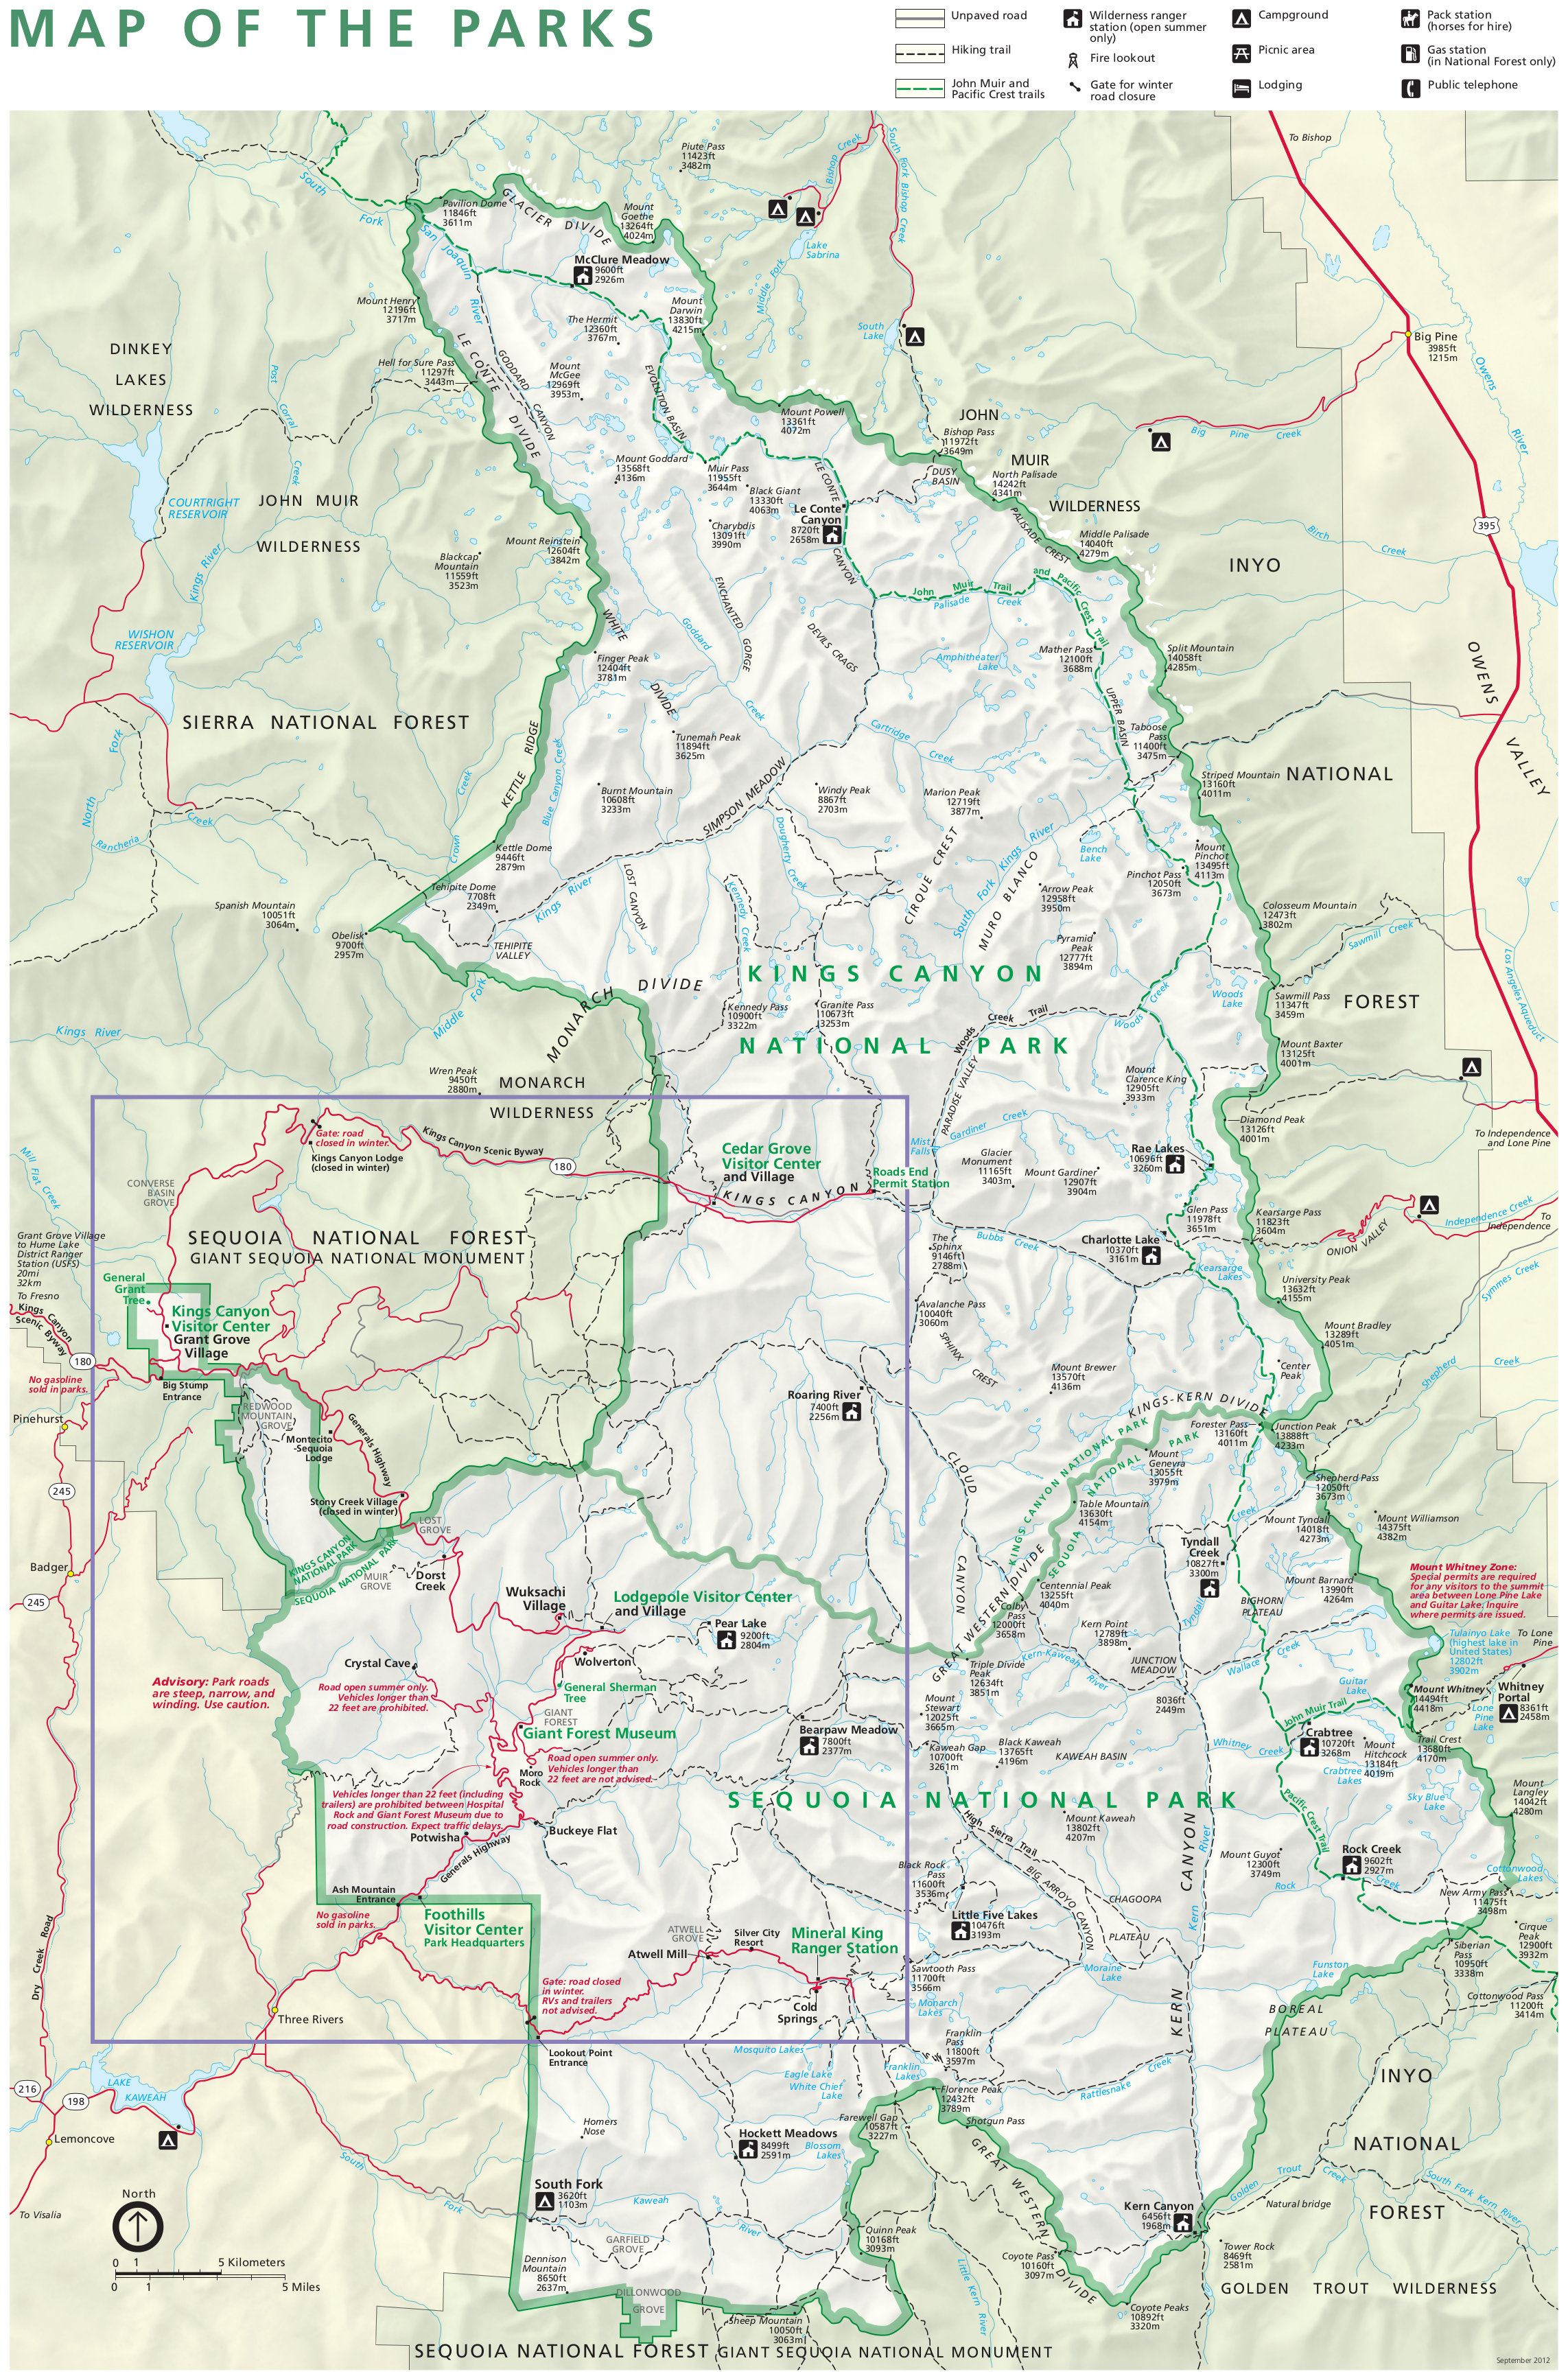 sequoia and kings canyon national park map. sequoia maps  npmapscom  just free maps period